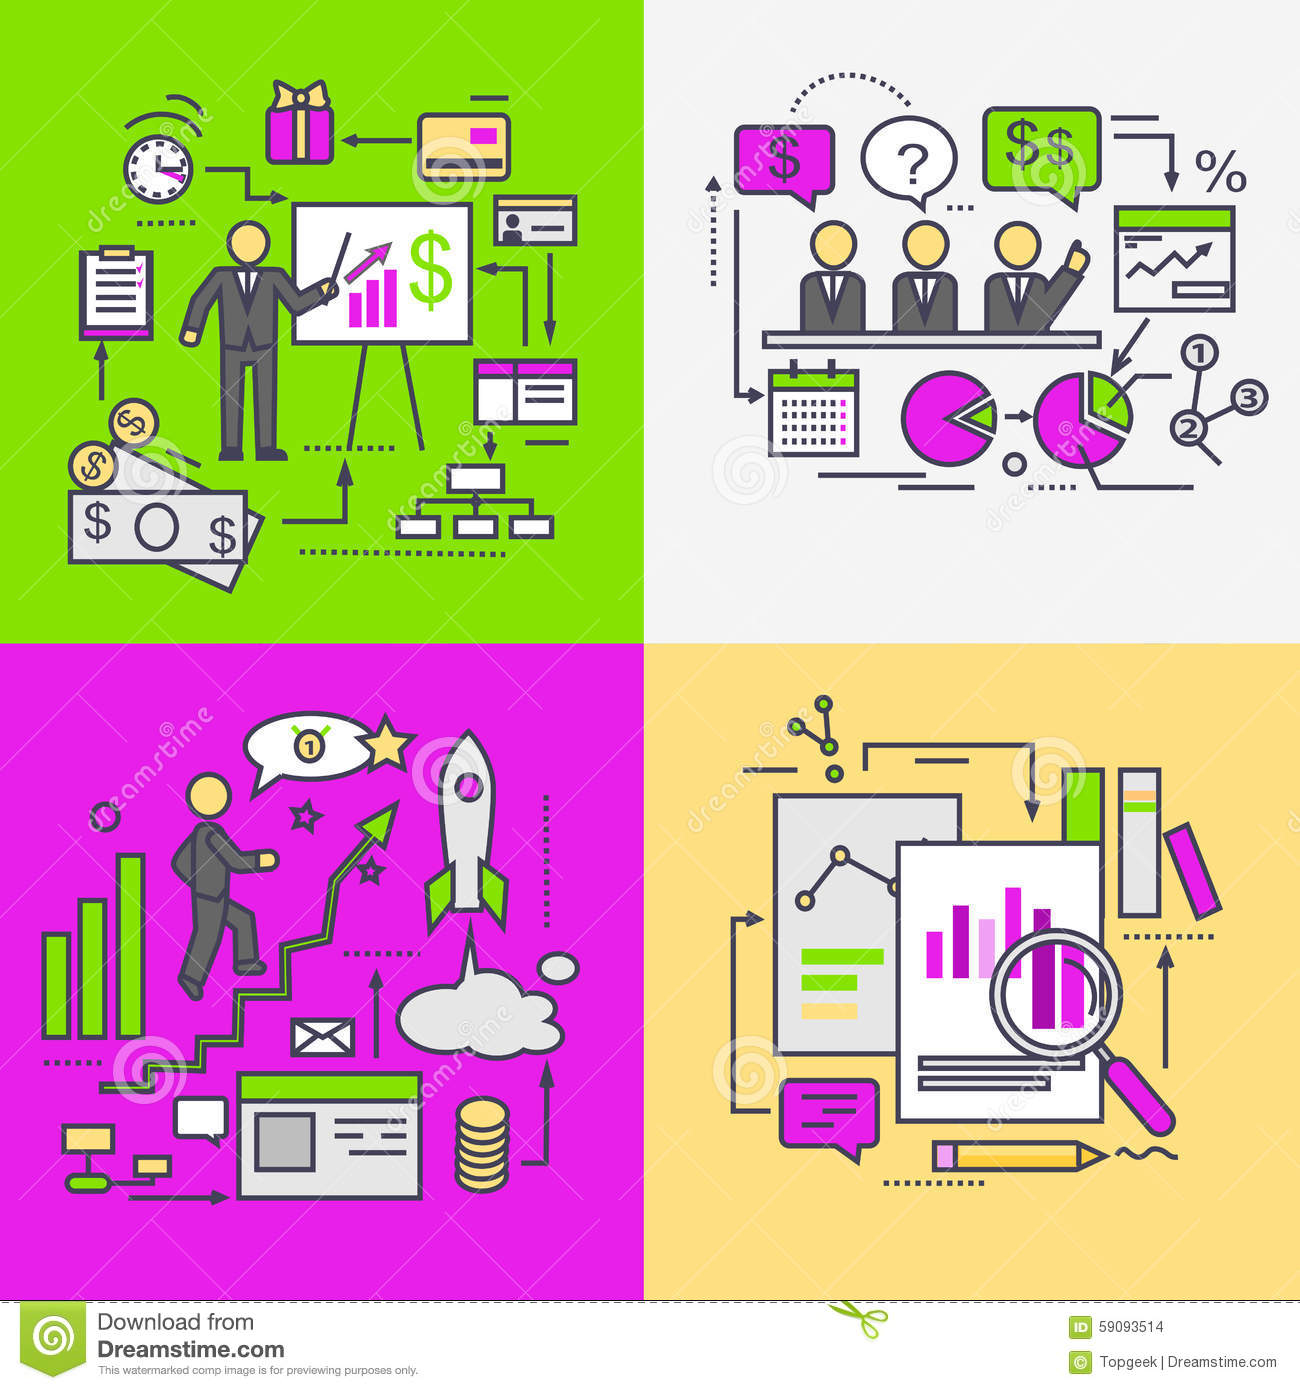 Business Data Analysis And Planning Startup